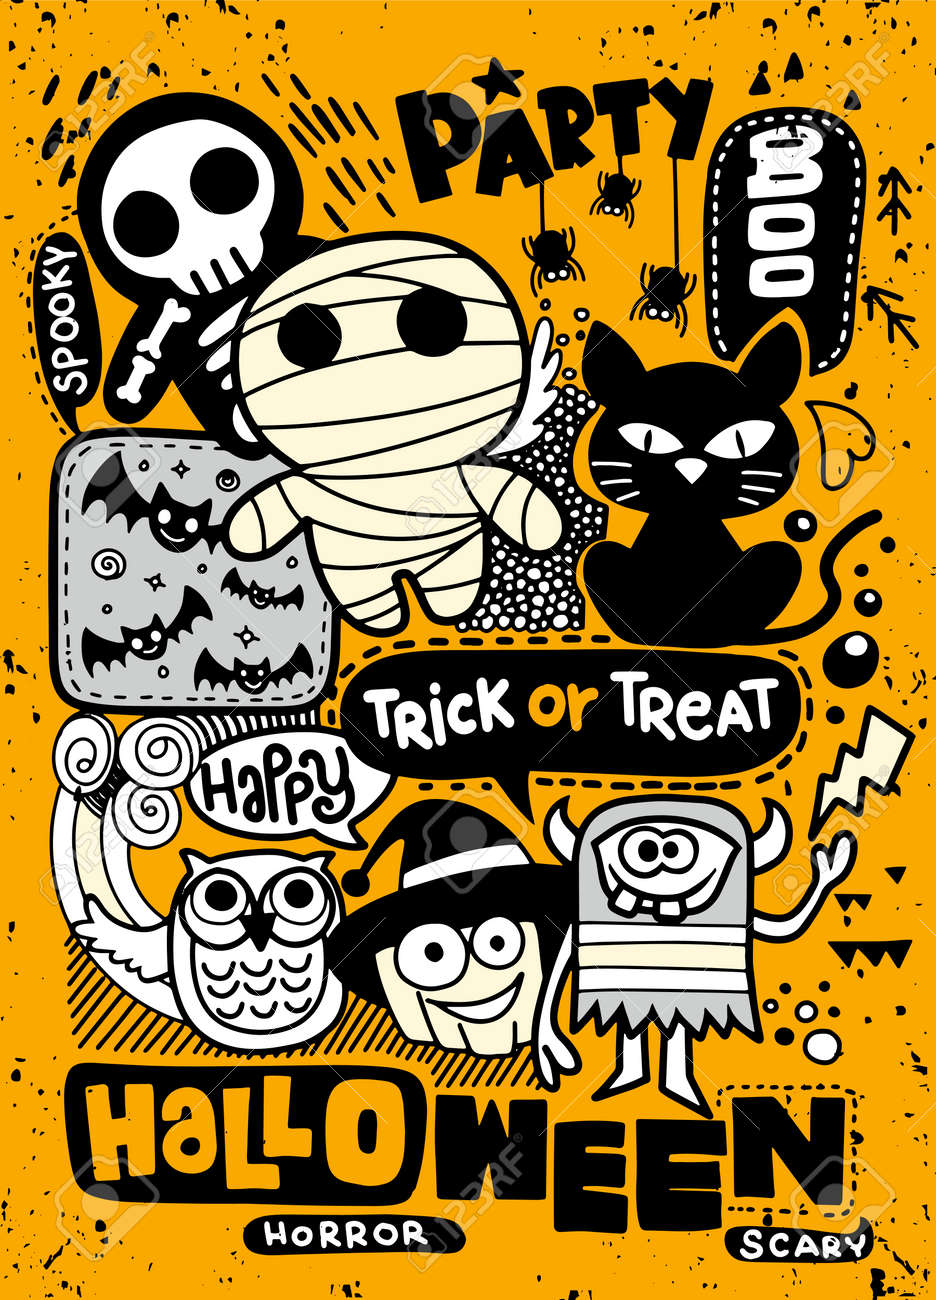 Halloween Party Invitation Card Cute Pumpkin Ghosts Kids And